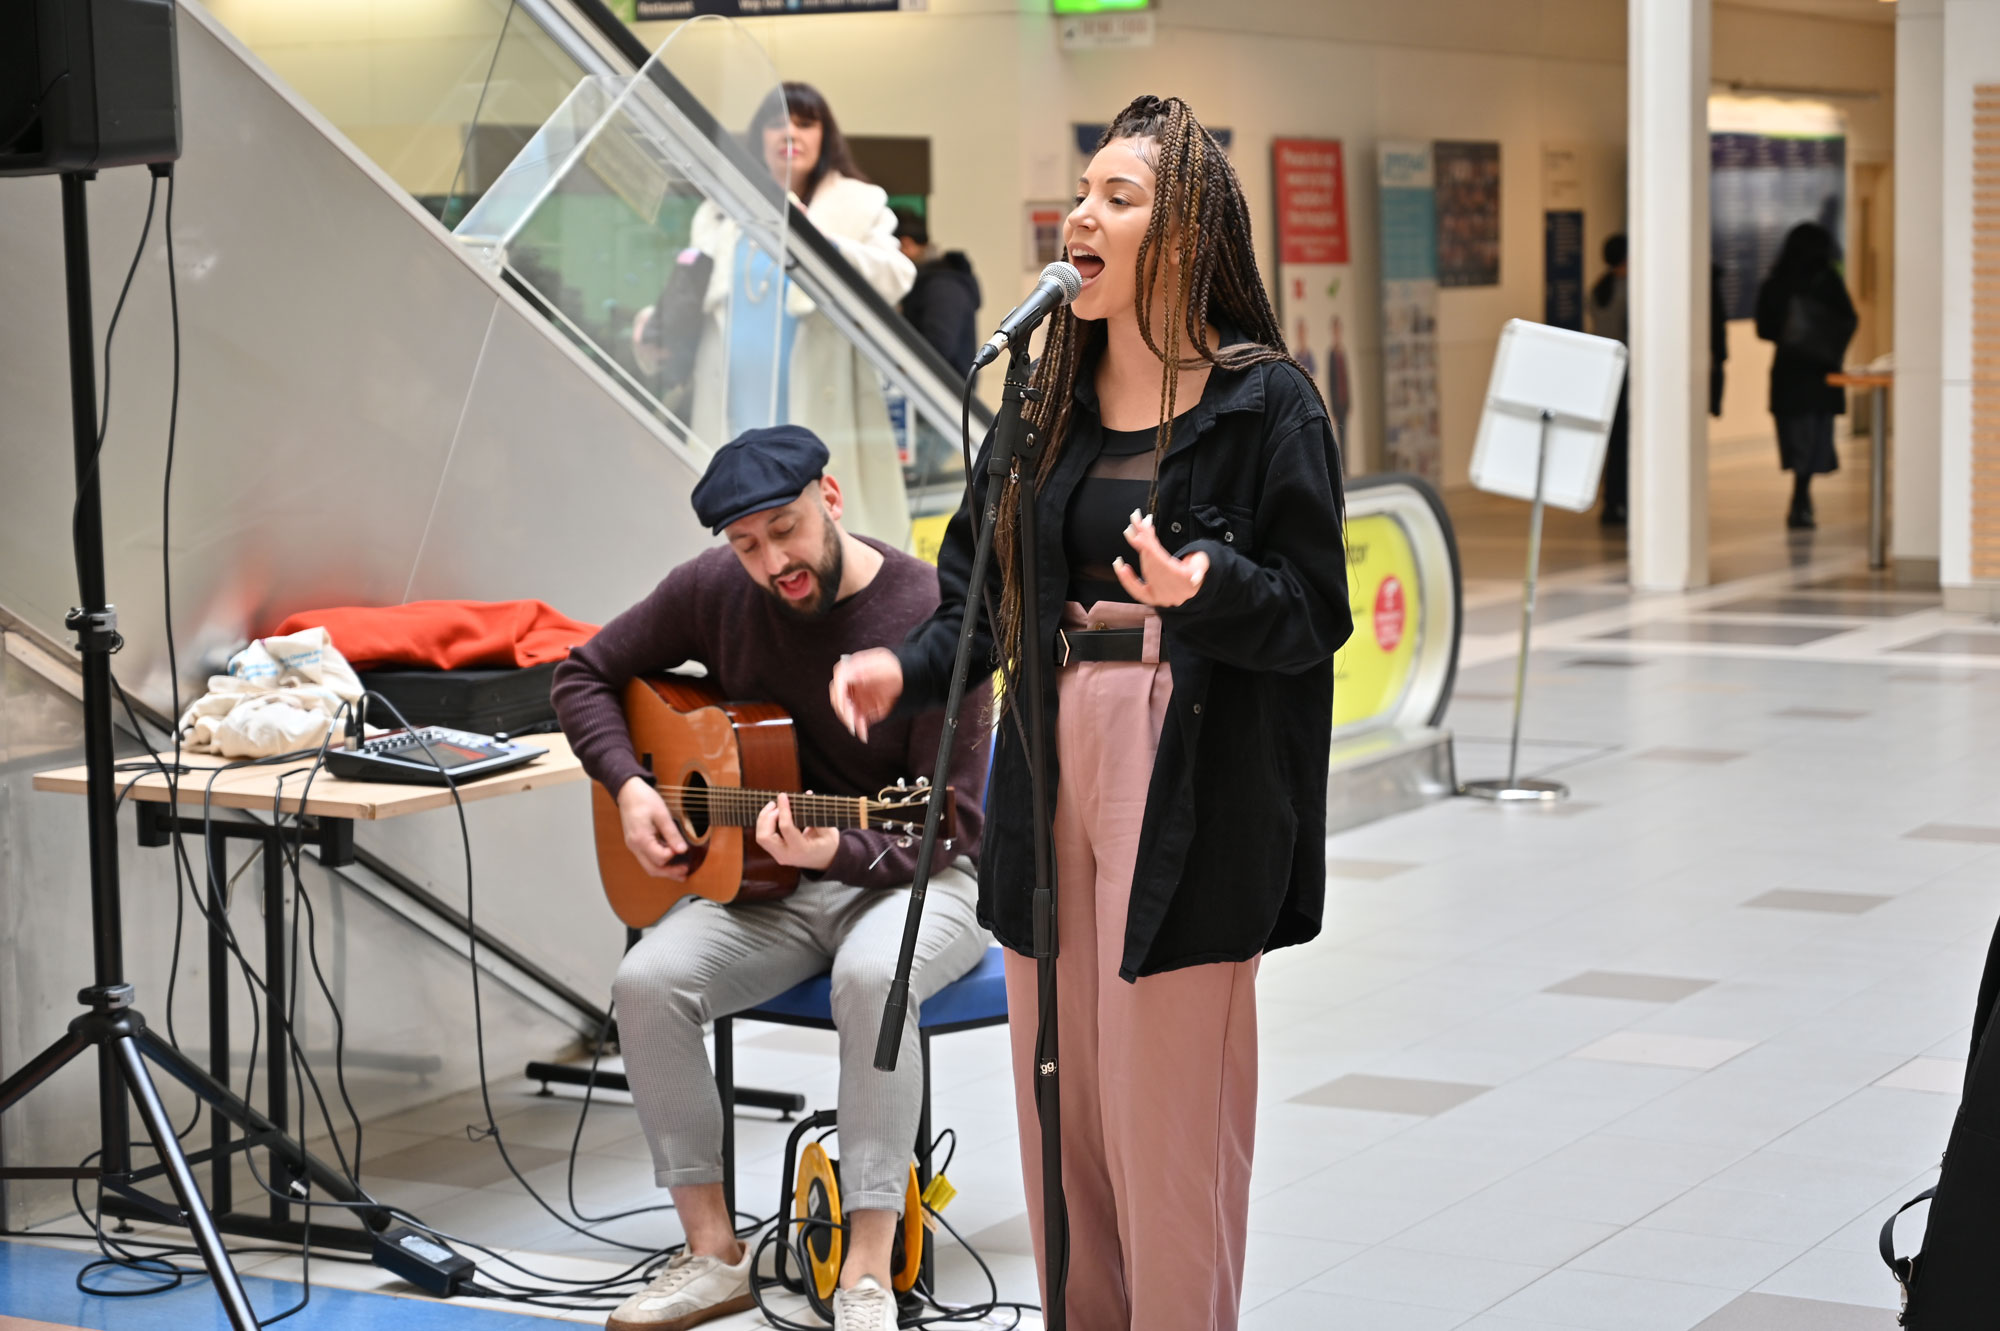 Young woman singing into microphone with man playing guitar in background